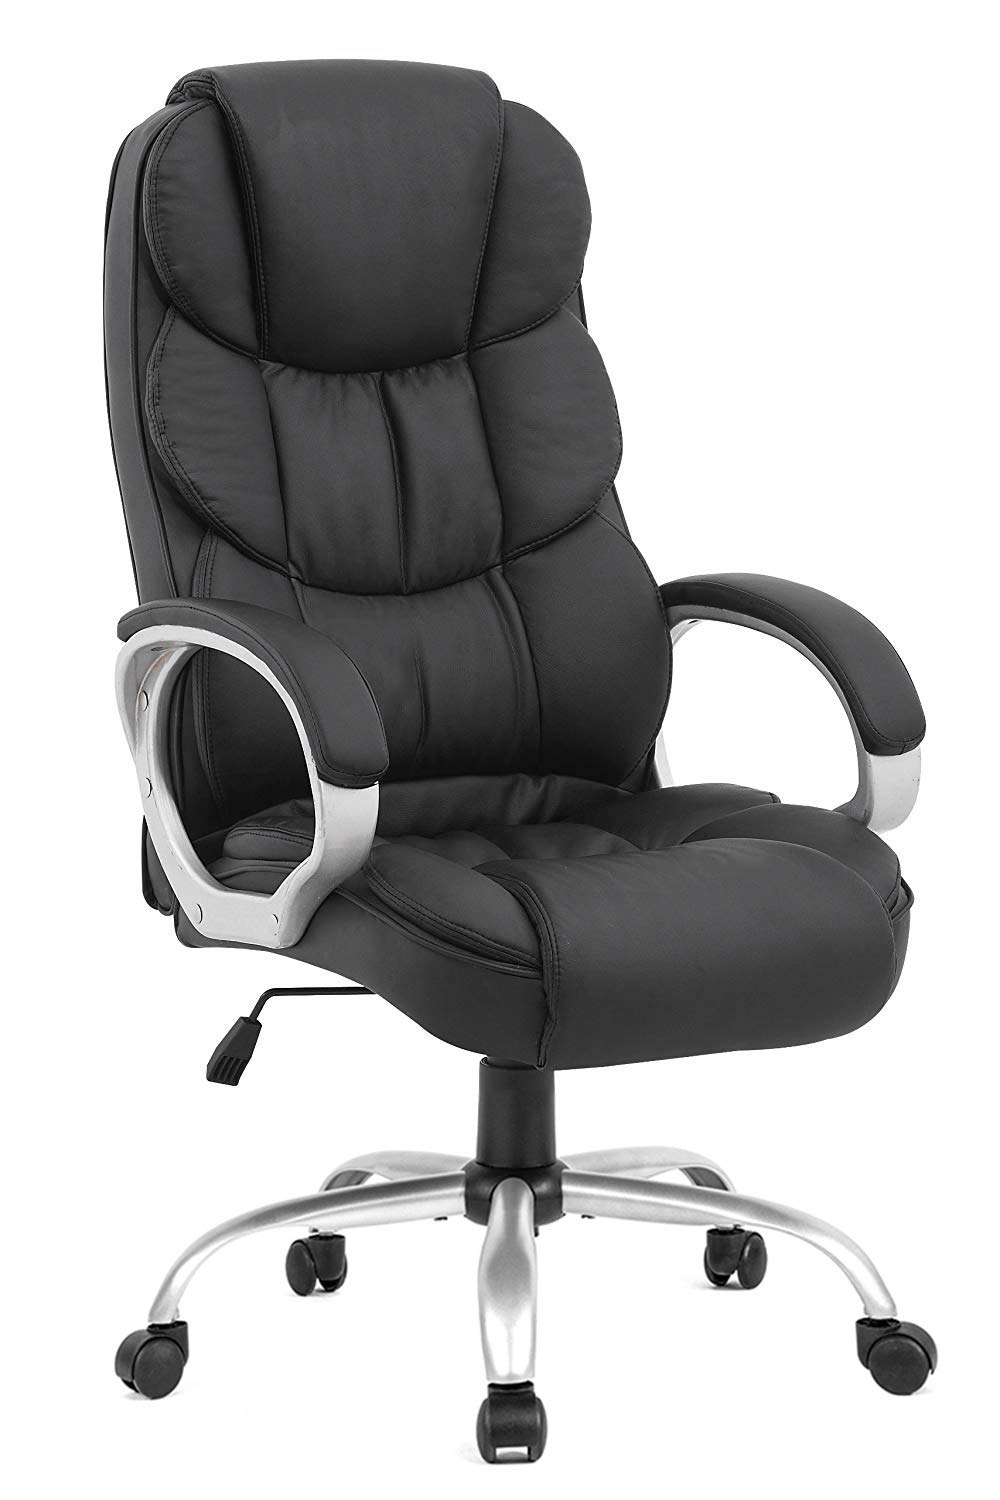 Office Chair Desk Ergonomic Swivel Executive Adjustable Task Computer High Back Chair with Back Support